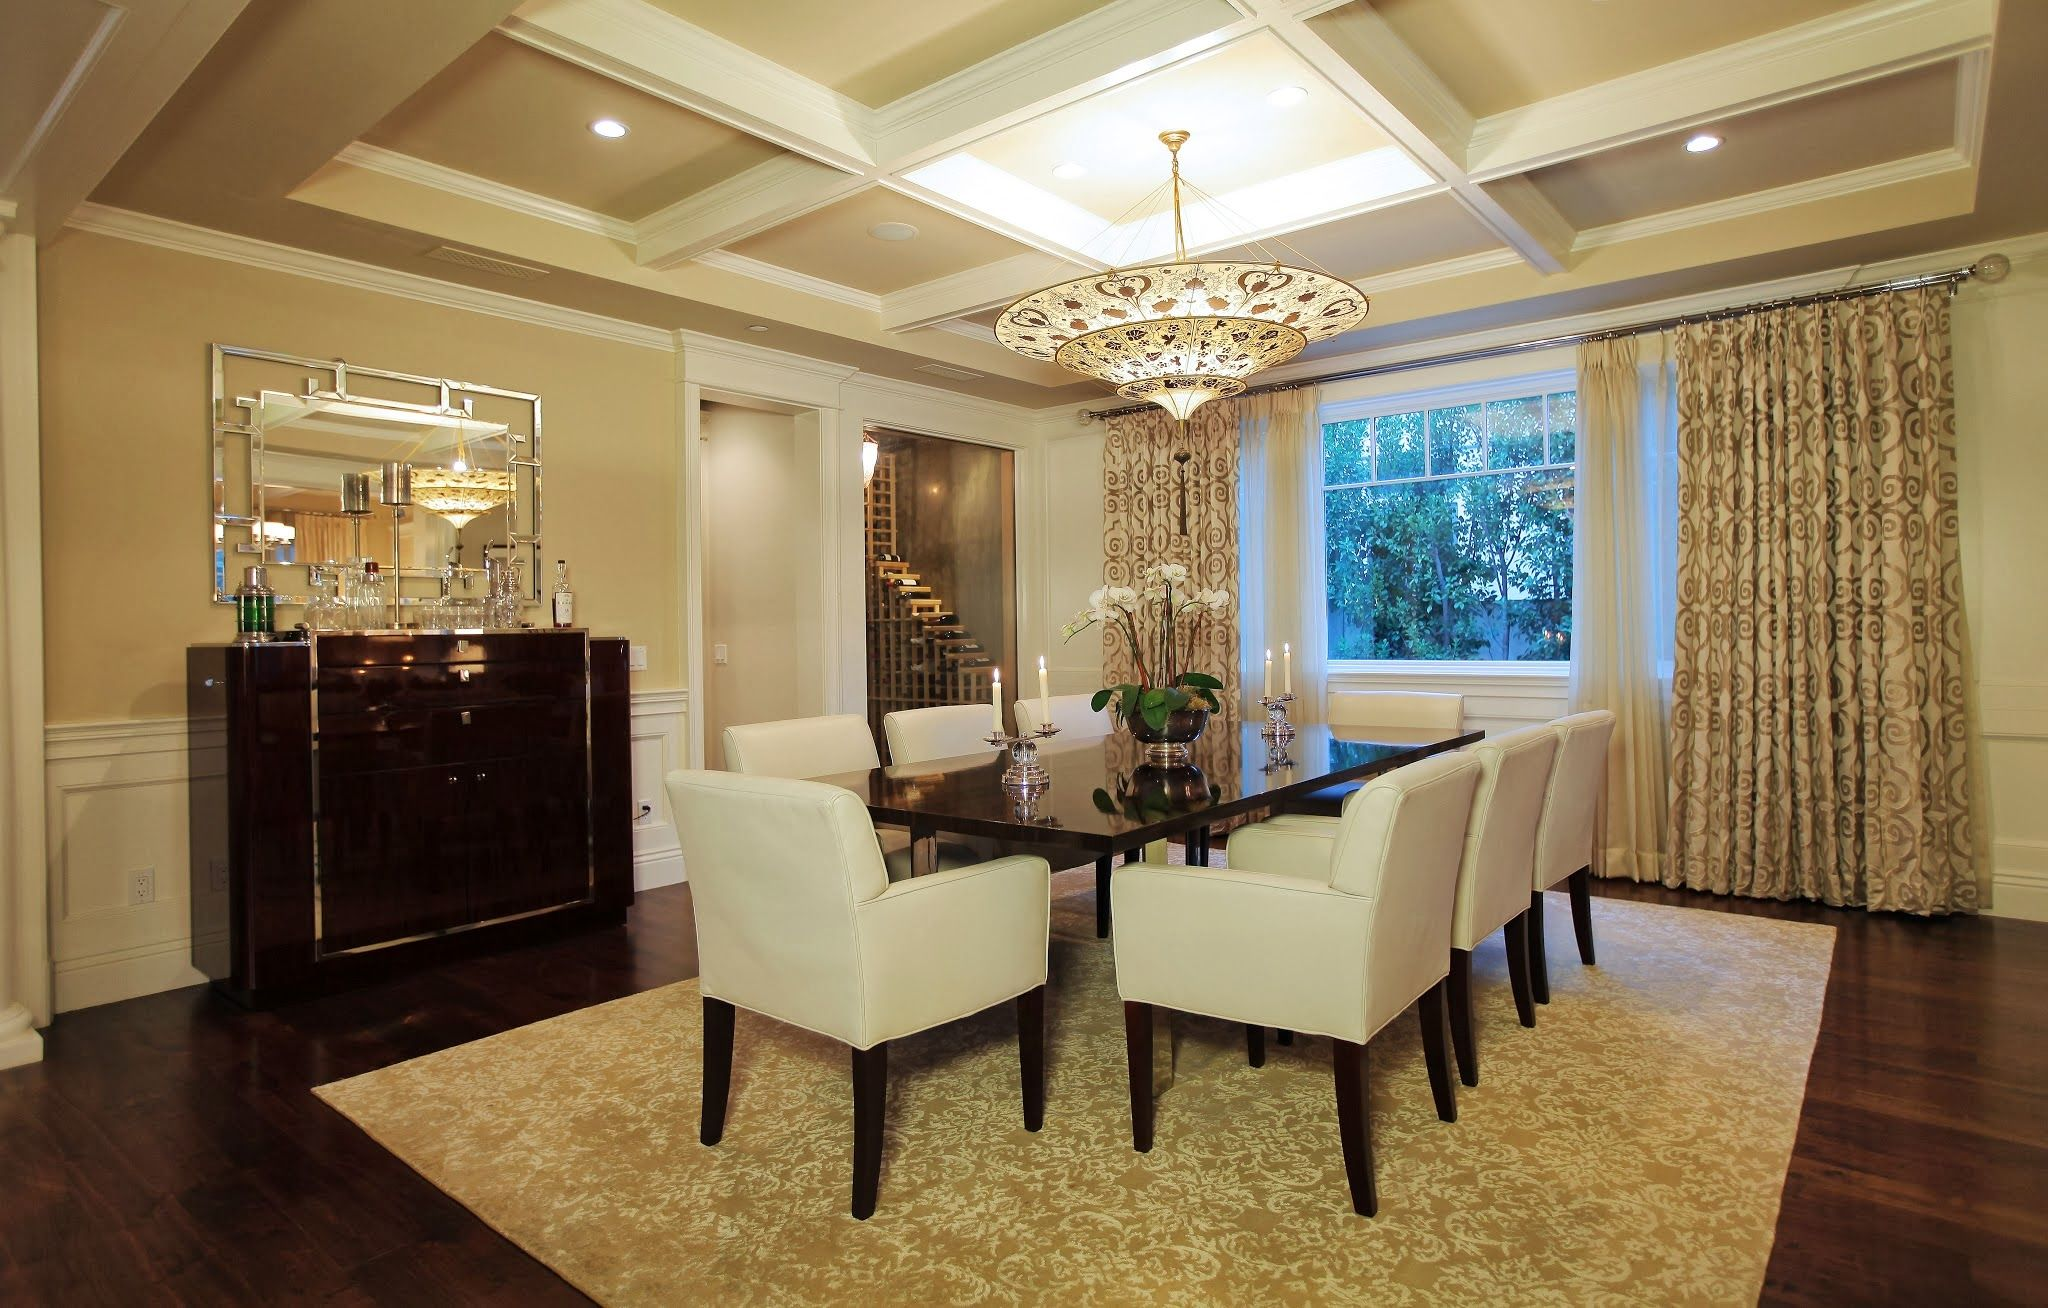 Top Ceiling Designs For Dining Room With Ideas Gorgeous Dining Room With  Beautiful Ceiling Design Ideas